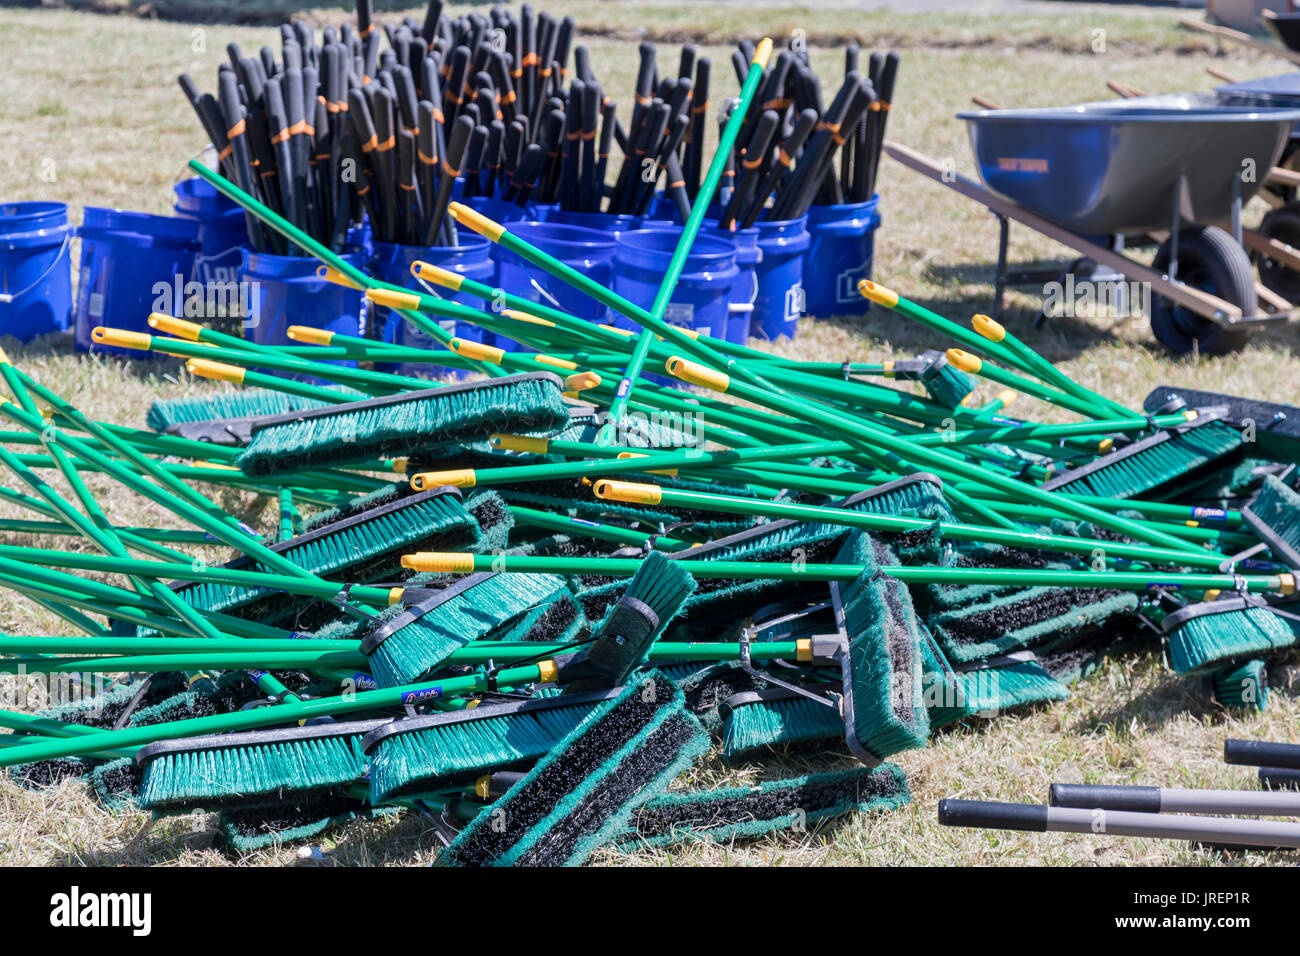 Detroit, Michigan - Equipment is ready for some of the thousands of volunteers who participate in an annual community improvement project called Life  - Stock Image